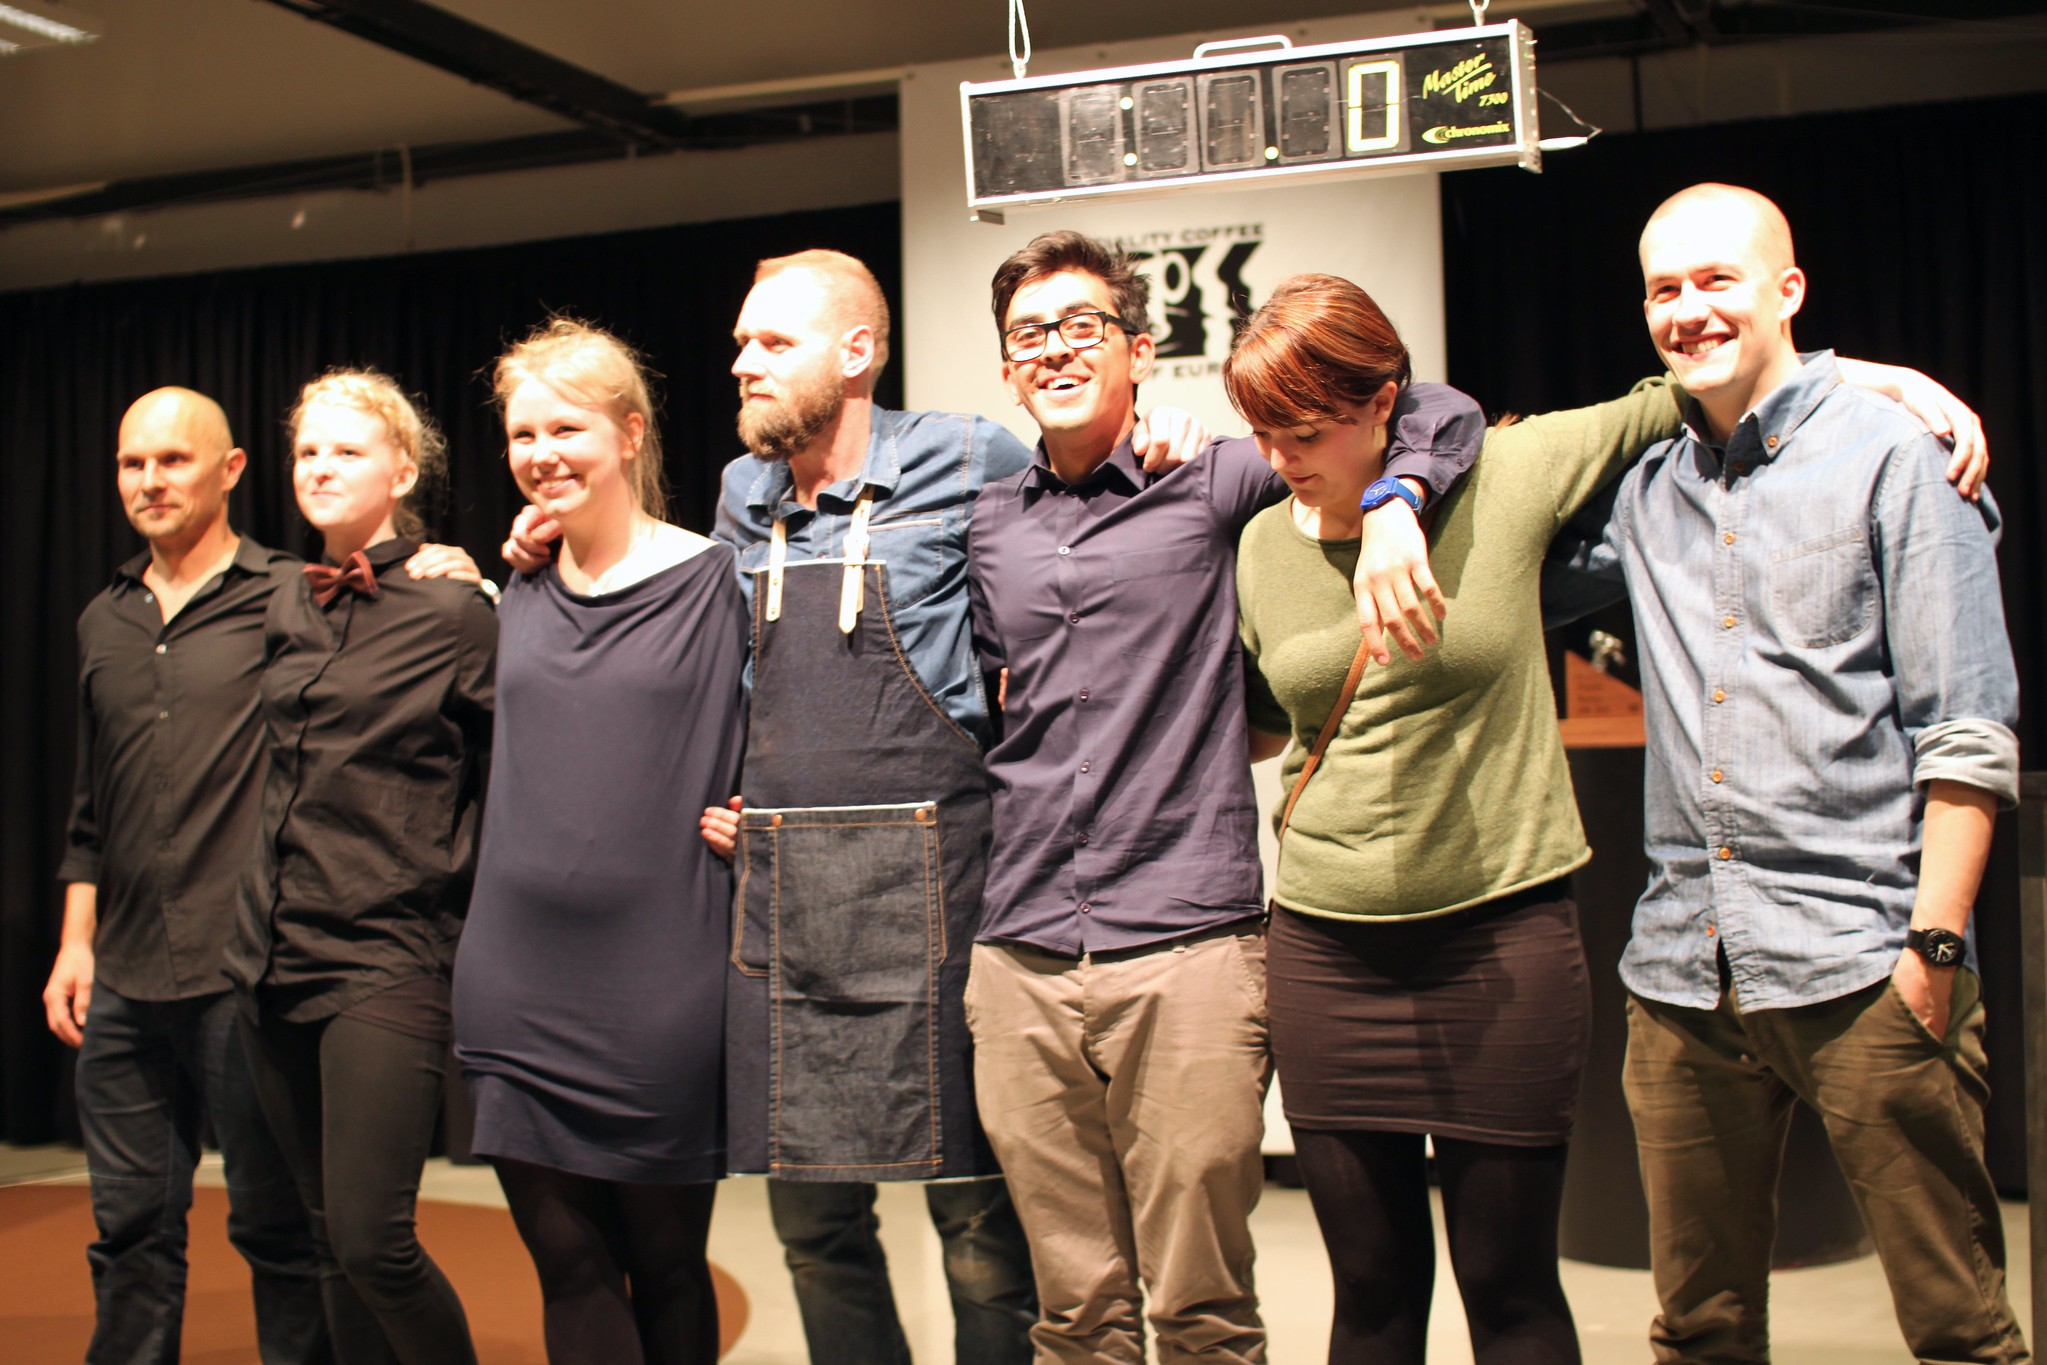 All seven competitors. From left to right: Allan Juhl, Maria Hagstrup, Sarah Lindqvist, Søren Stiller, Omar Maagaard Houssein, Katrine Deleuran Petersen and Rasmus Gamrath.